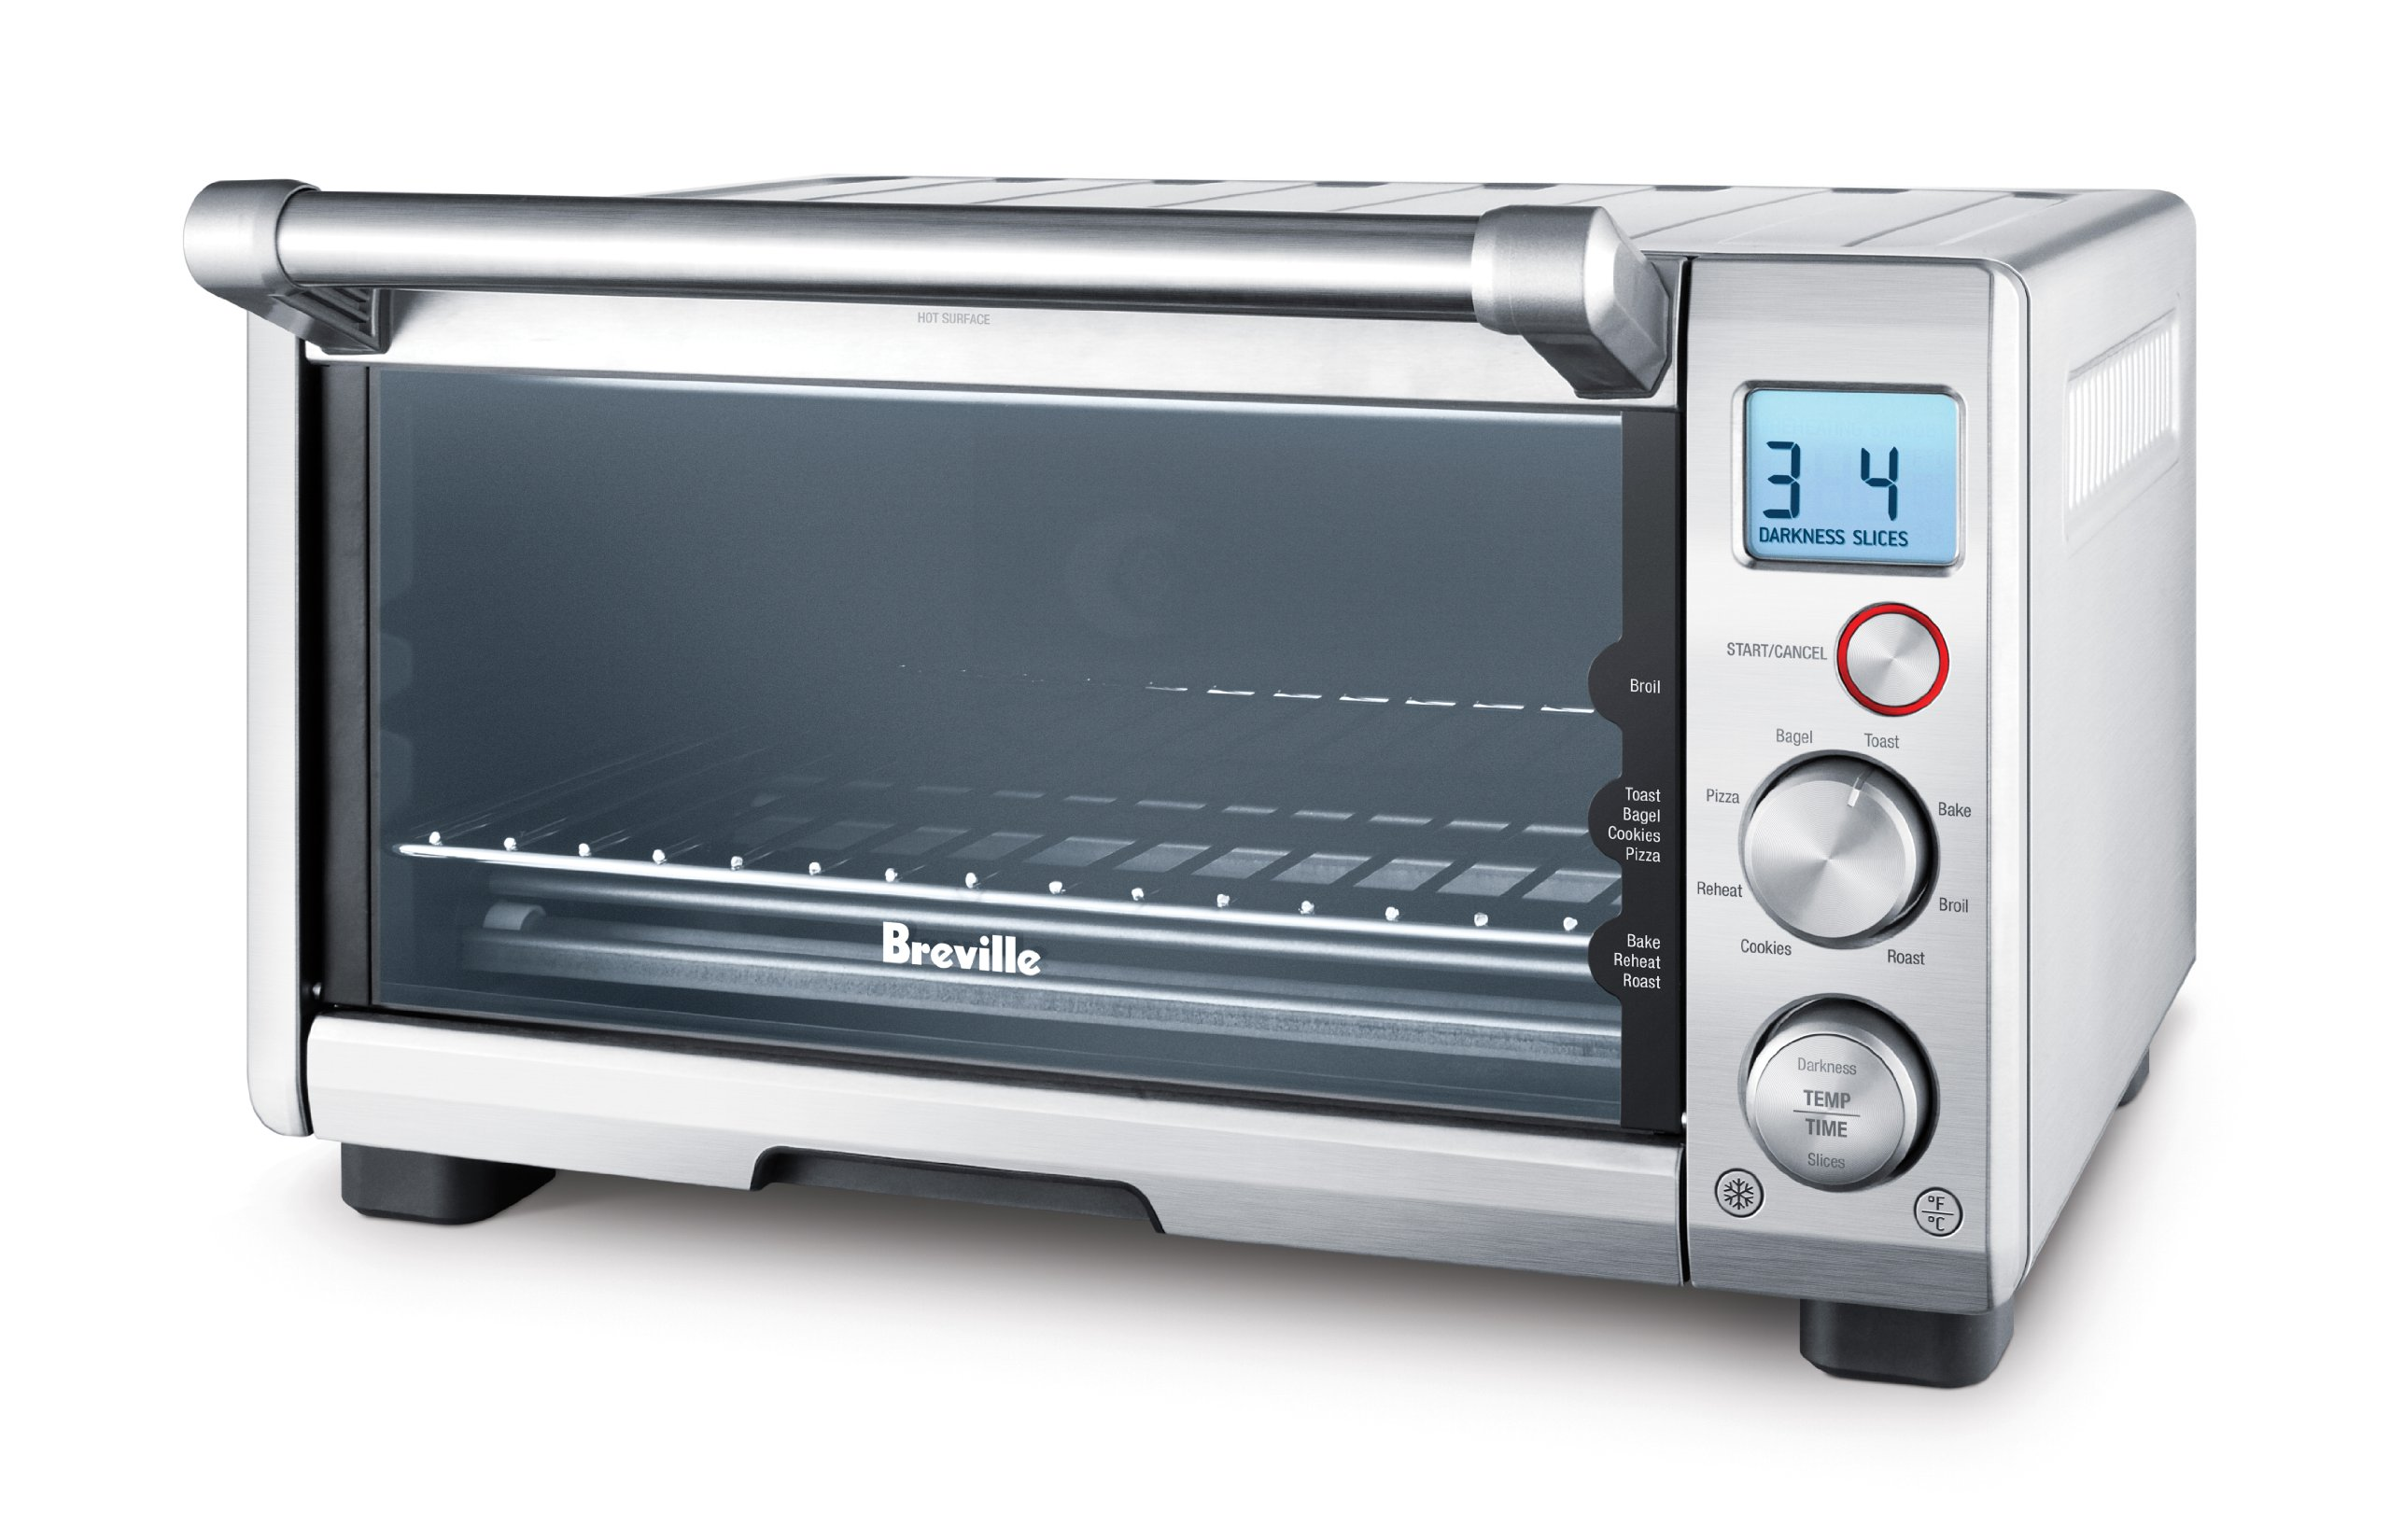 Breville BOV650XL the Compact Smart Oven, Stainless Steel